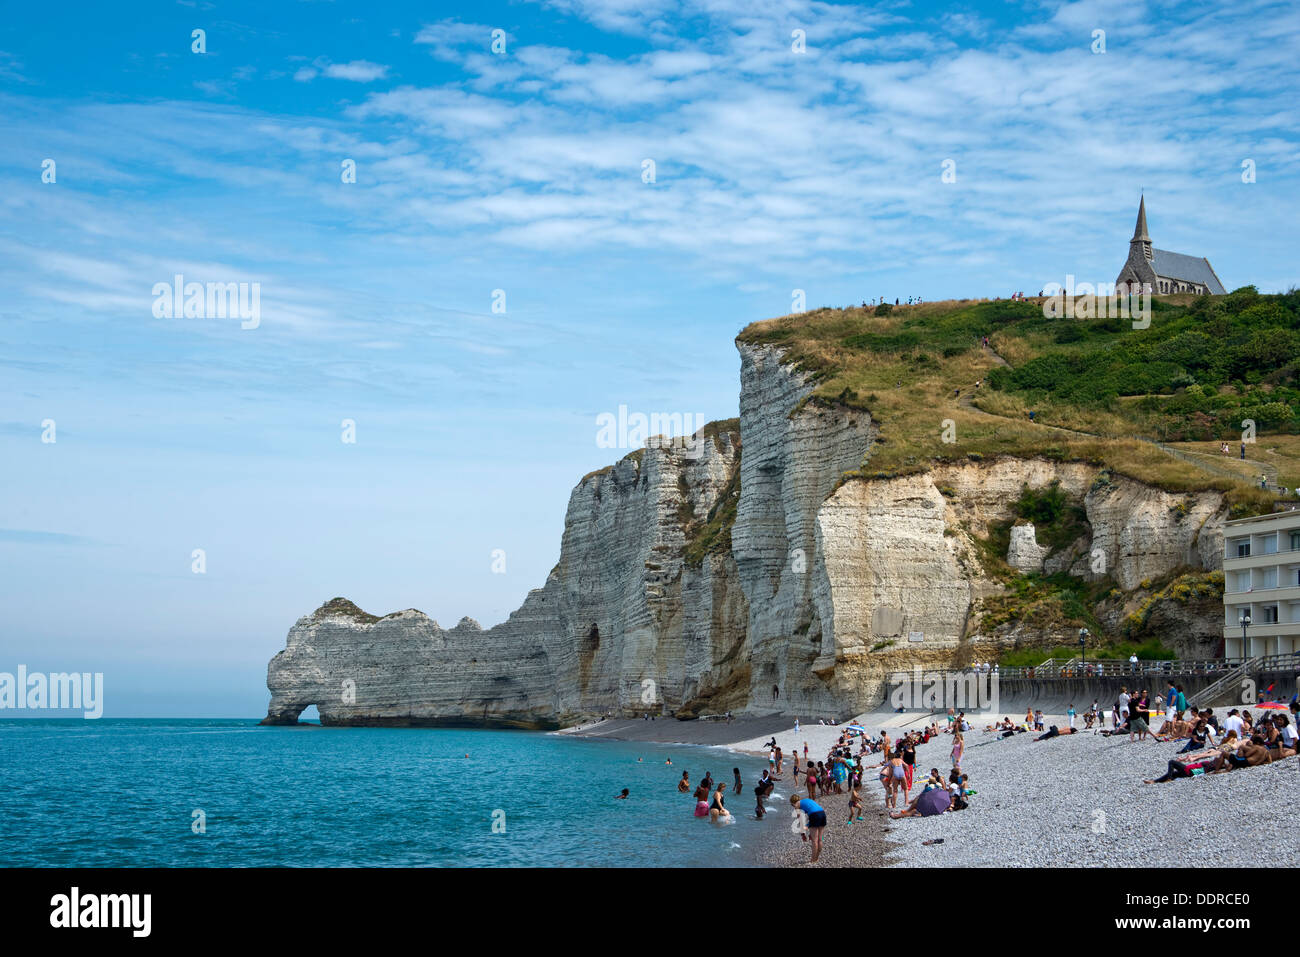 The beach and the cliff of Etretat in summer - Haute-Normandie, France - Stock Image